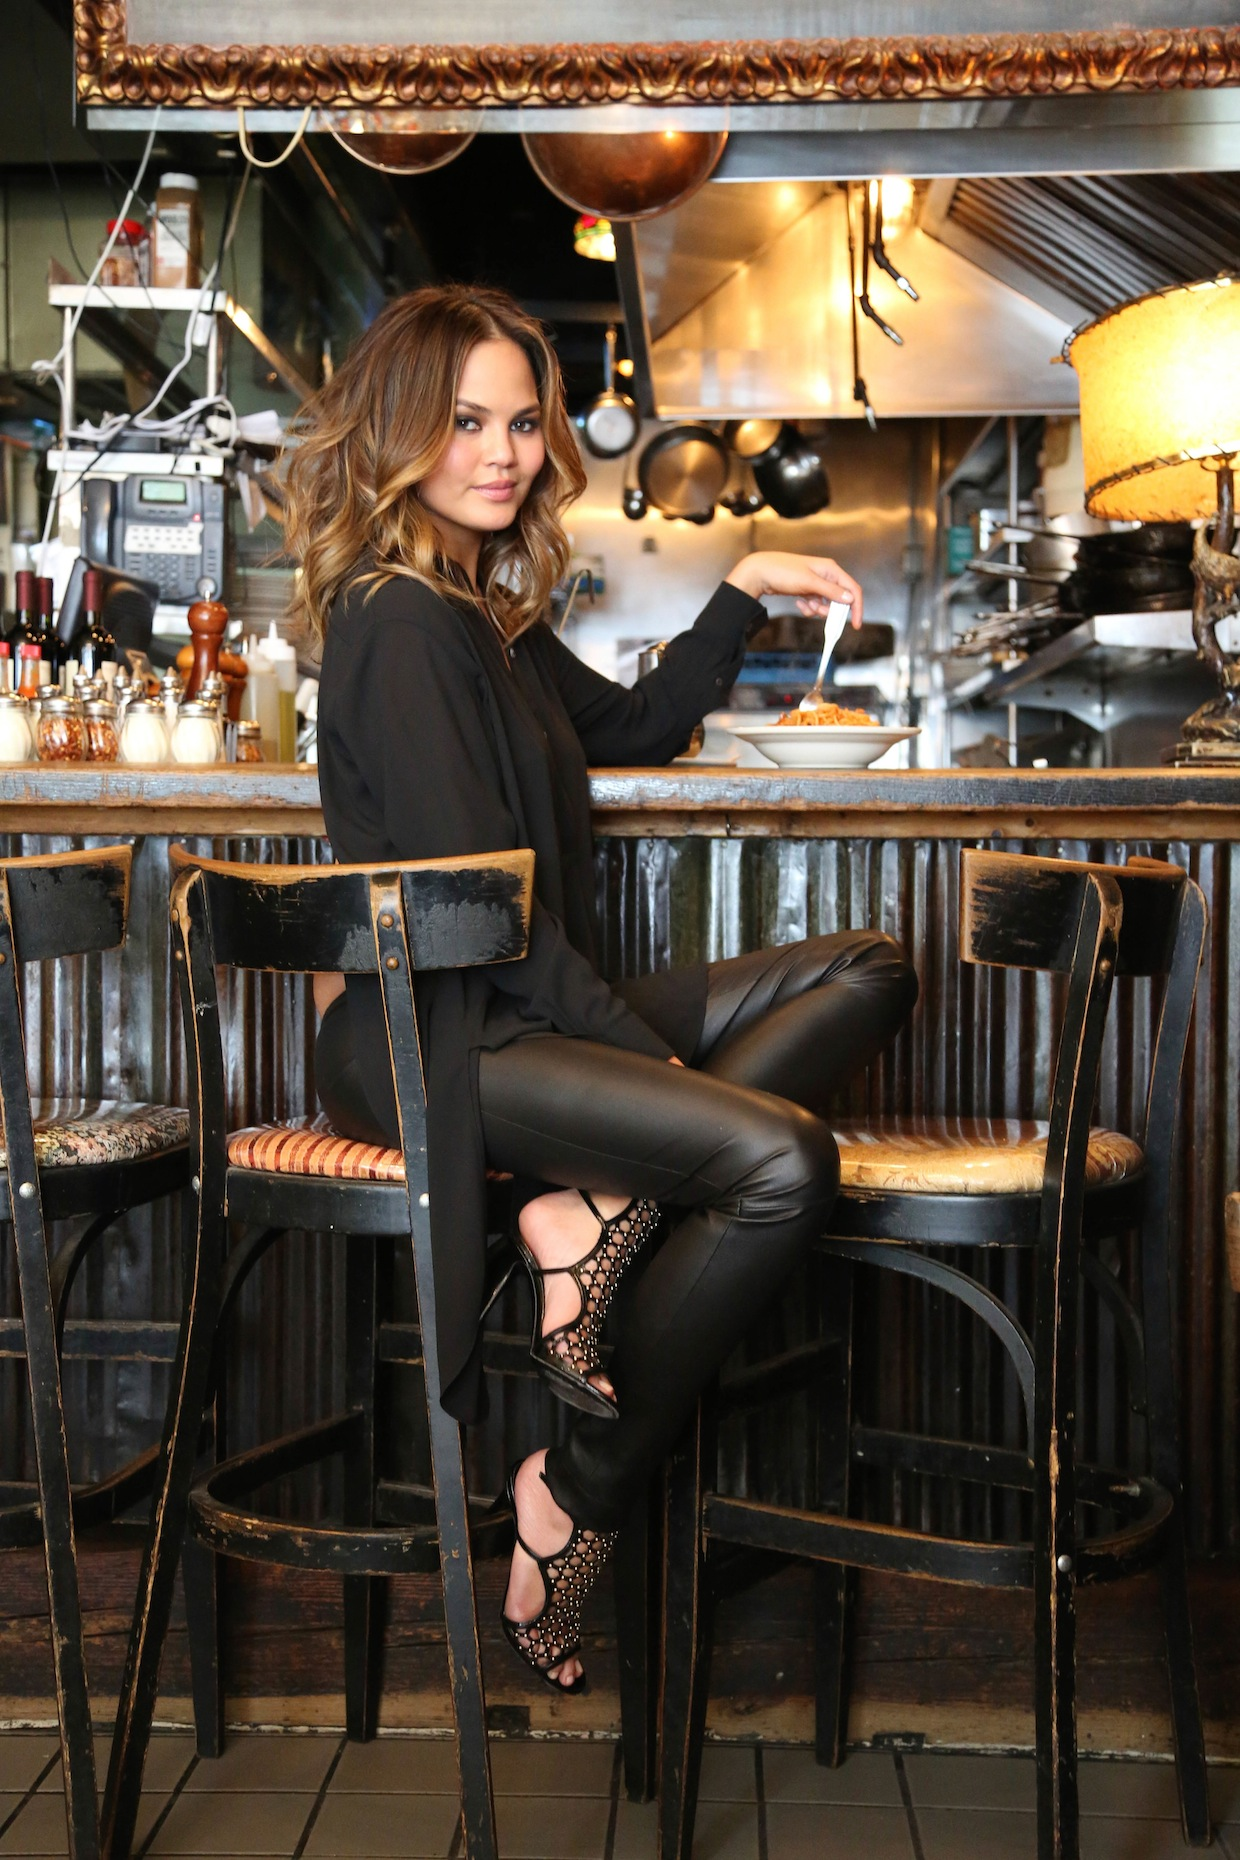 Chrissy Teigen, Model, Interview 2015